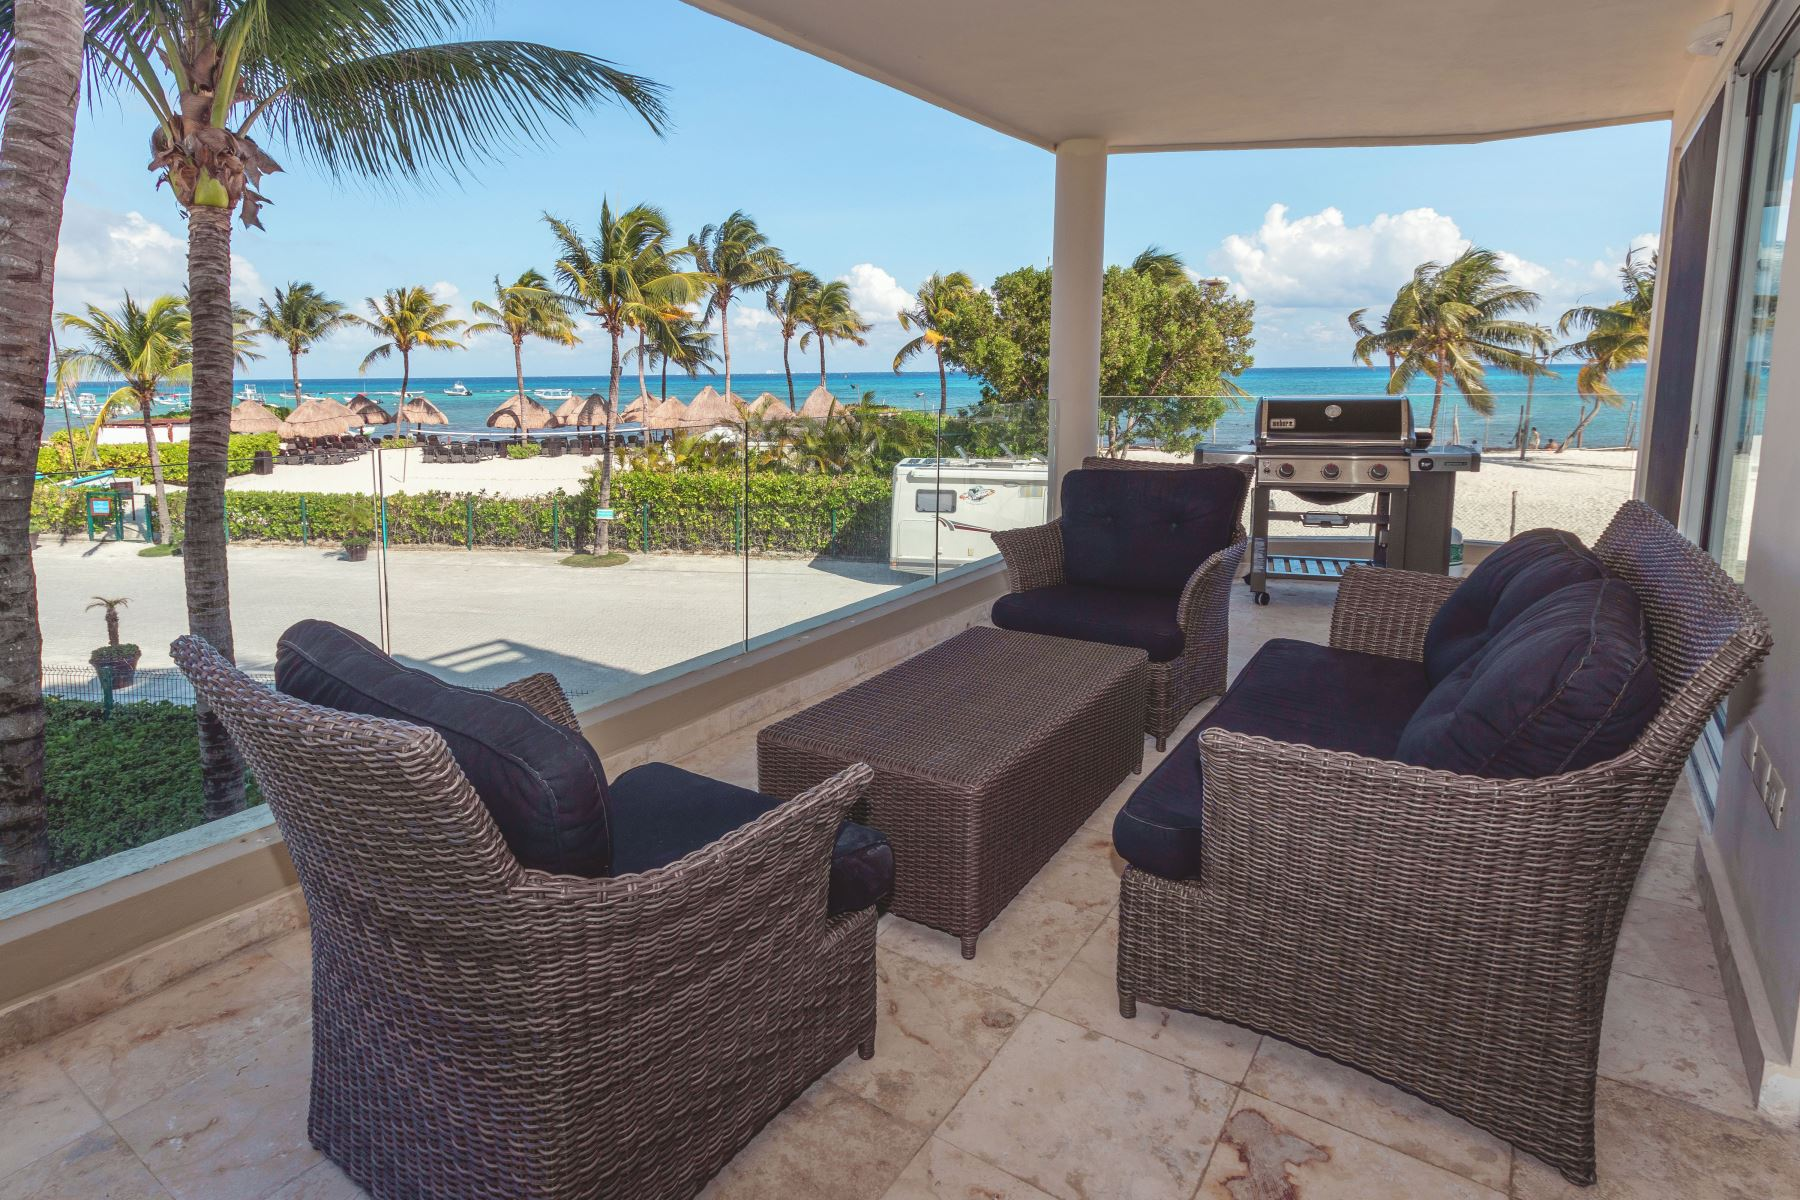 The Elements 101 Playa del Carmen Condo Home For Sale Real Estate to Buy